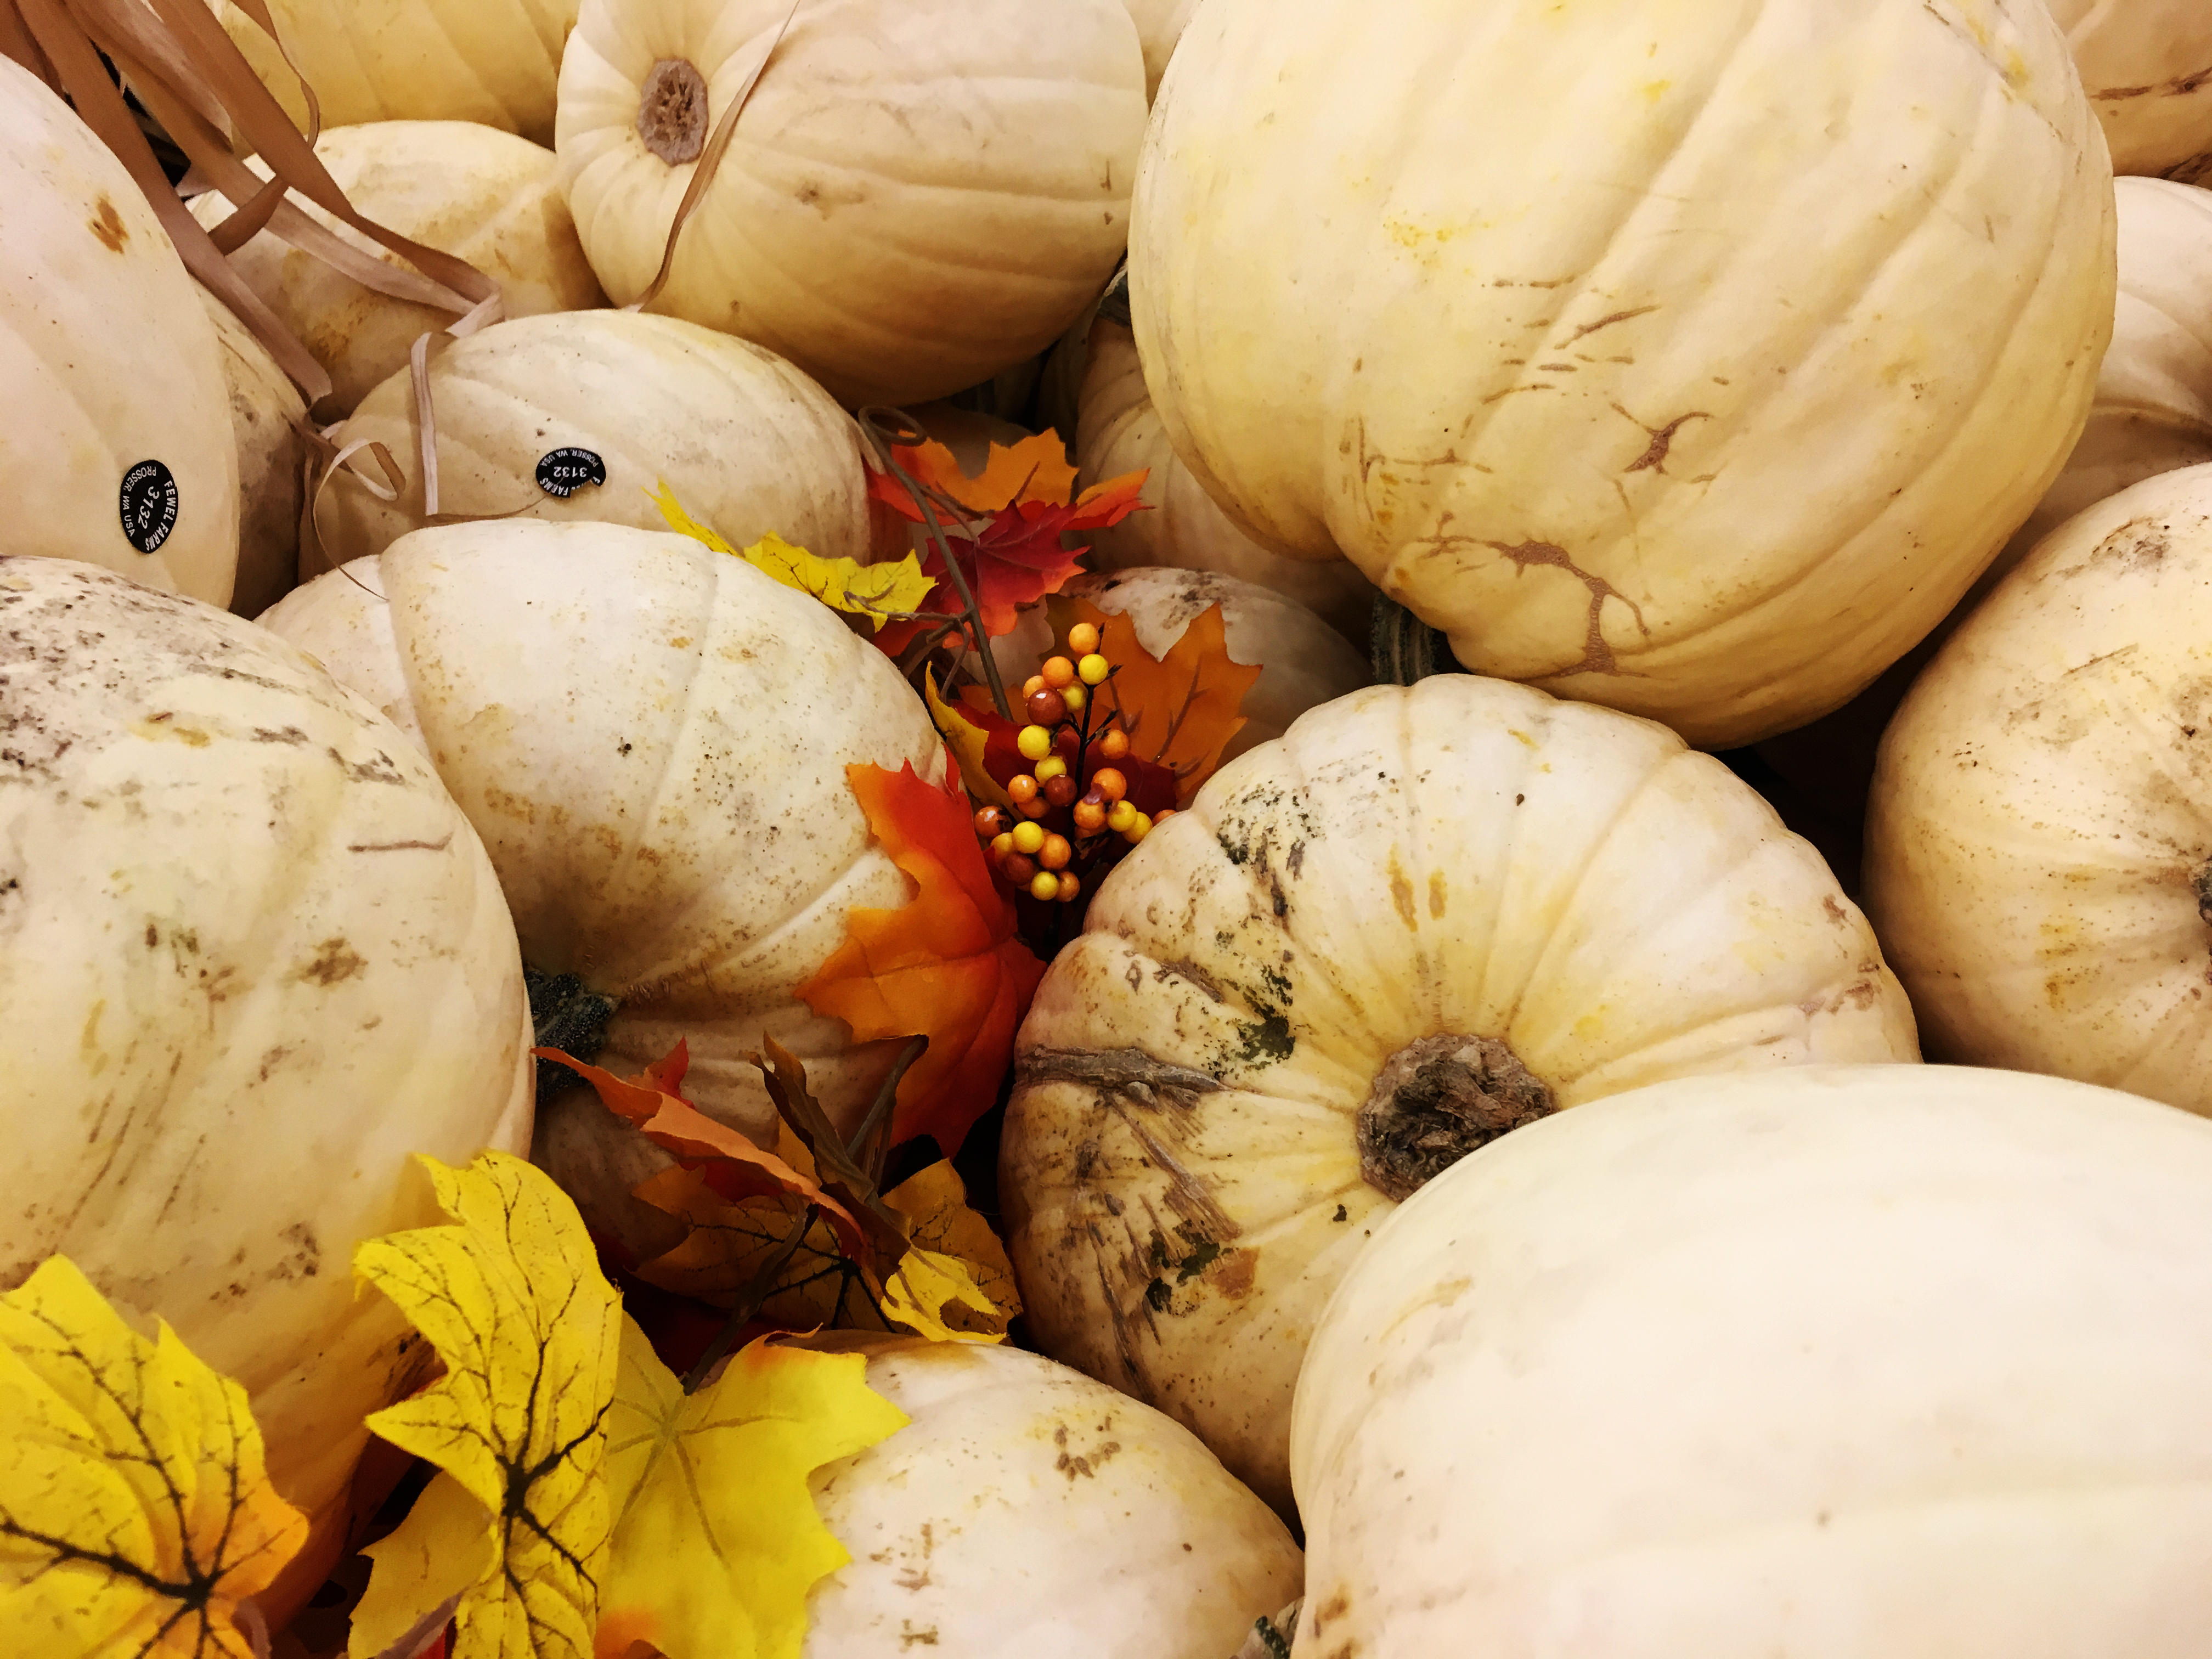 Pumpkins with pale rinds stand out as Halloween decorations. Varieties to try include Lumina, Baby Boo or Casper. (Photo: Photo by Ashley Andrews.)